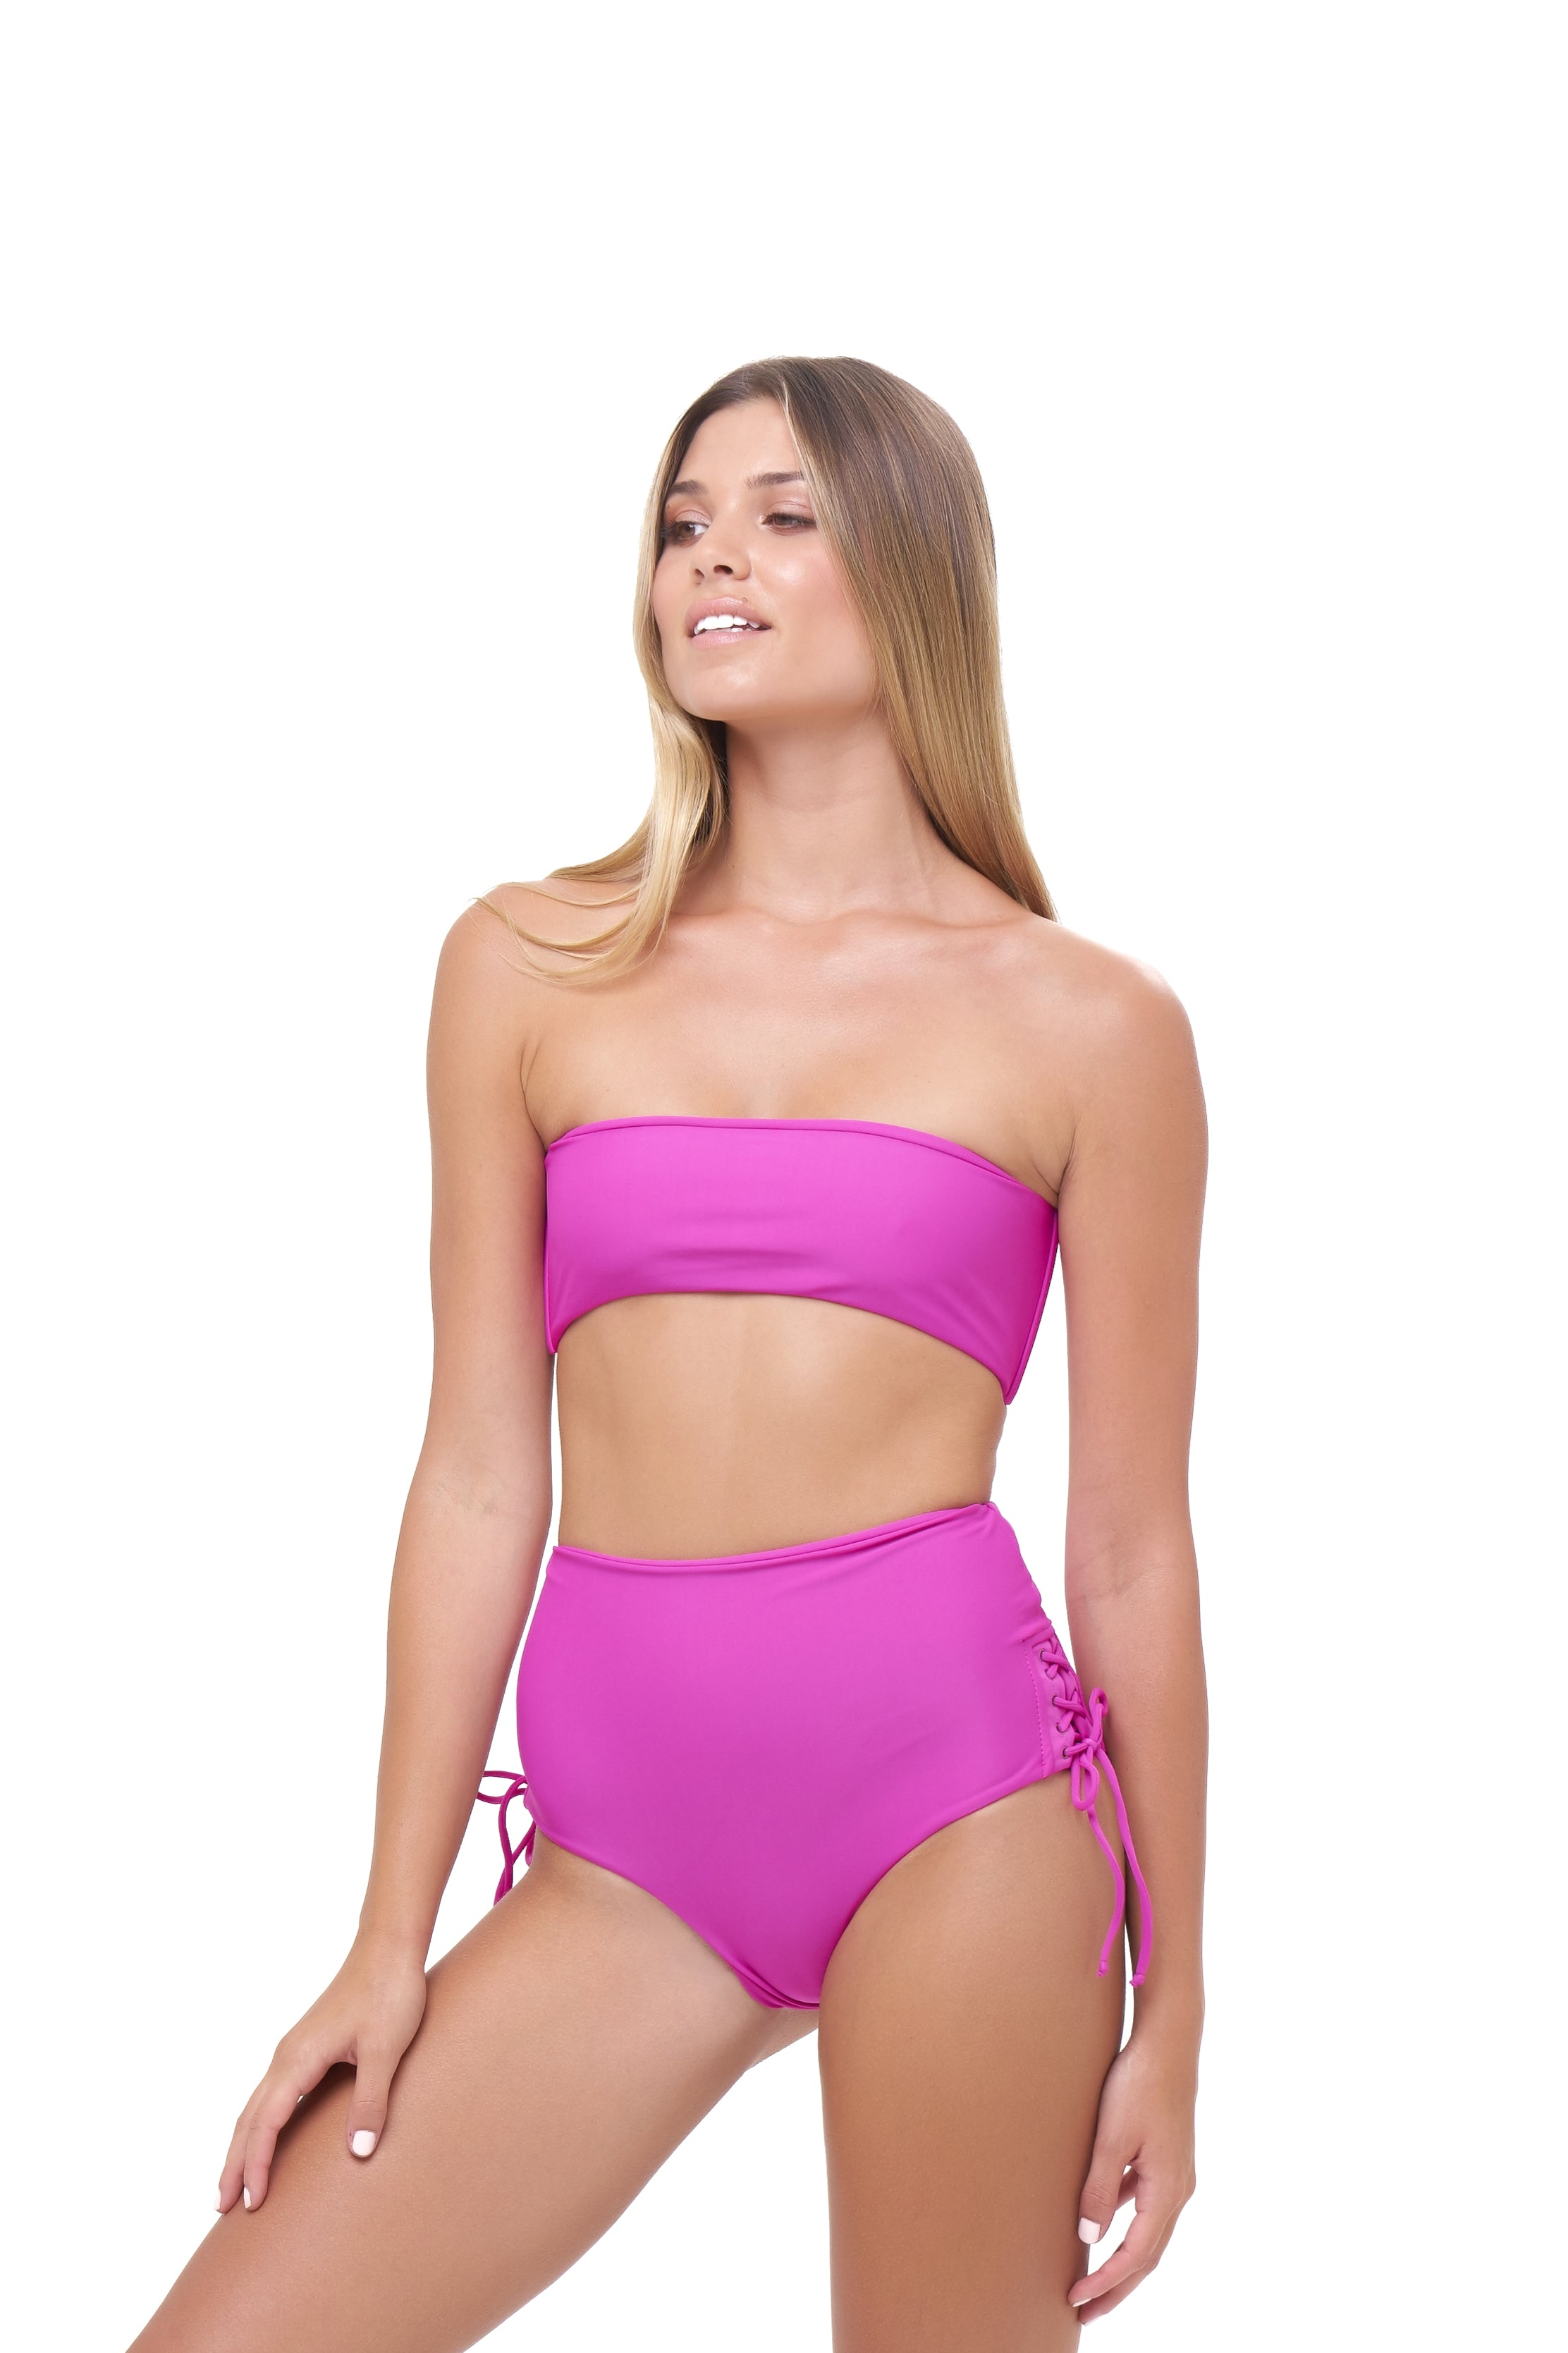 Storm Swimwear - Ravello - Plain Bandeu Bikini Top in Fuchsia